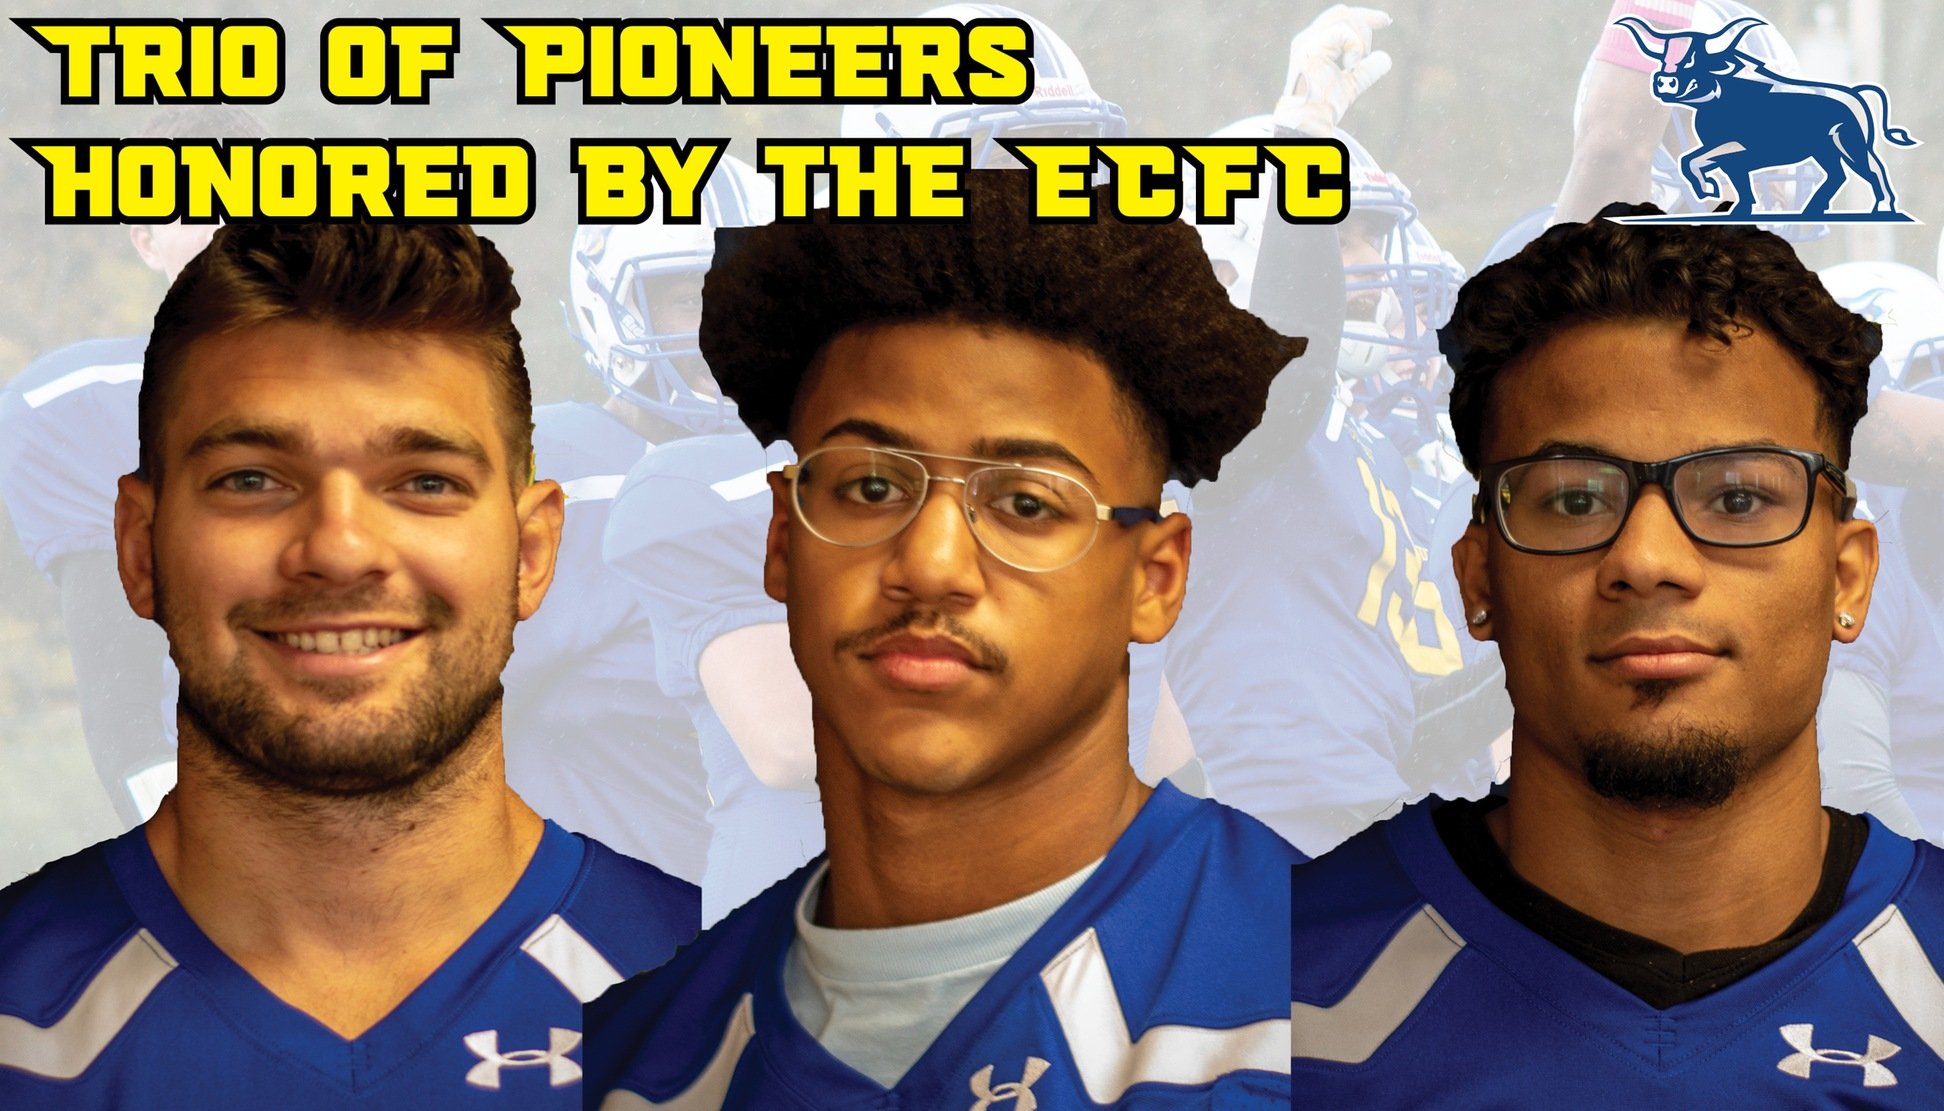 Lauretti, Clark, and Vargas honored by ECFC